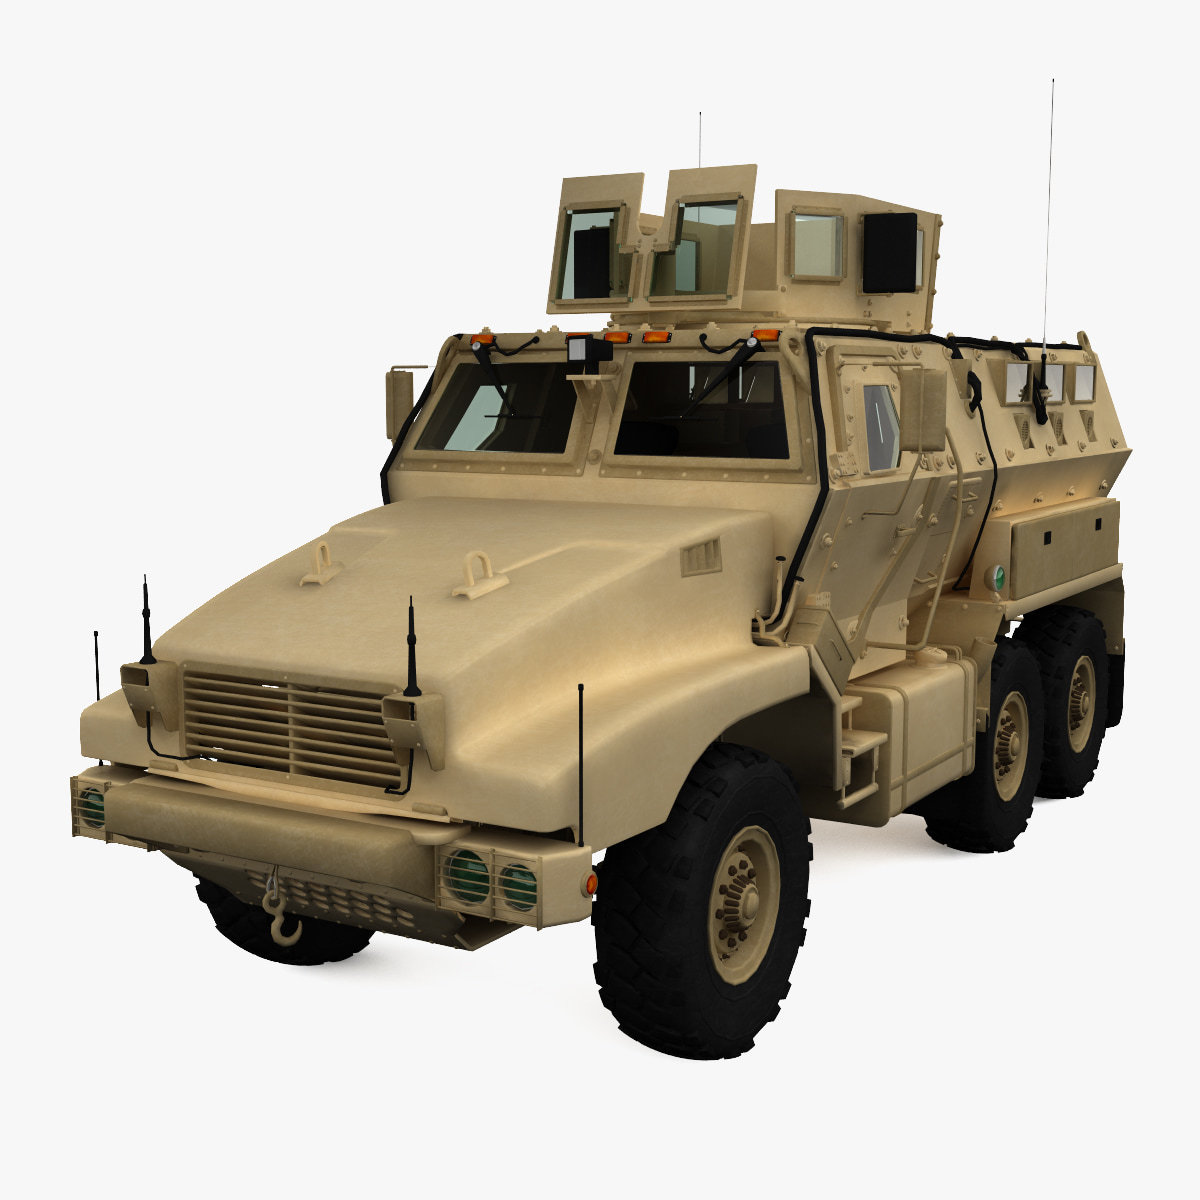 BAE_Caiman_Armored_Vehicle_V2_00.jpg